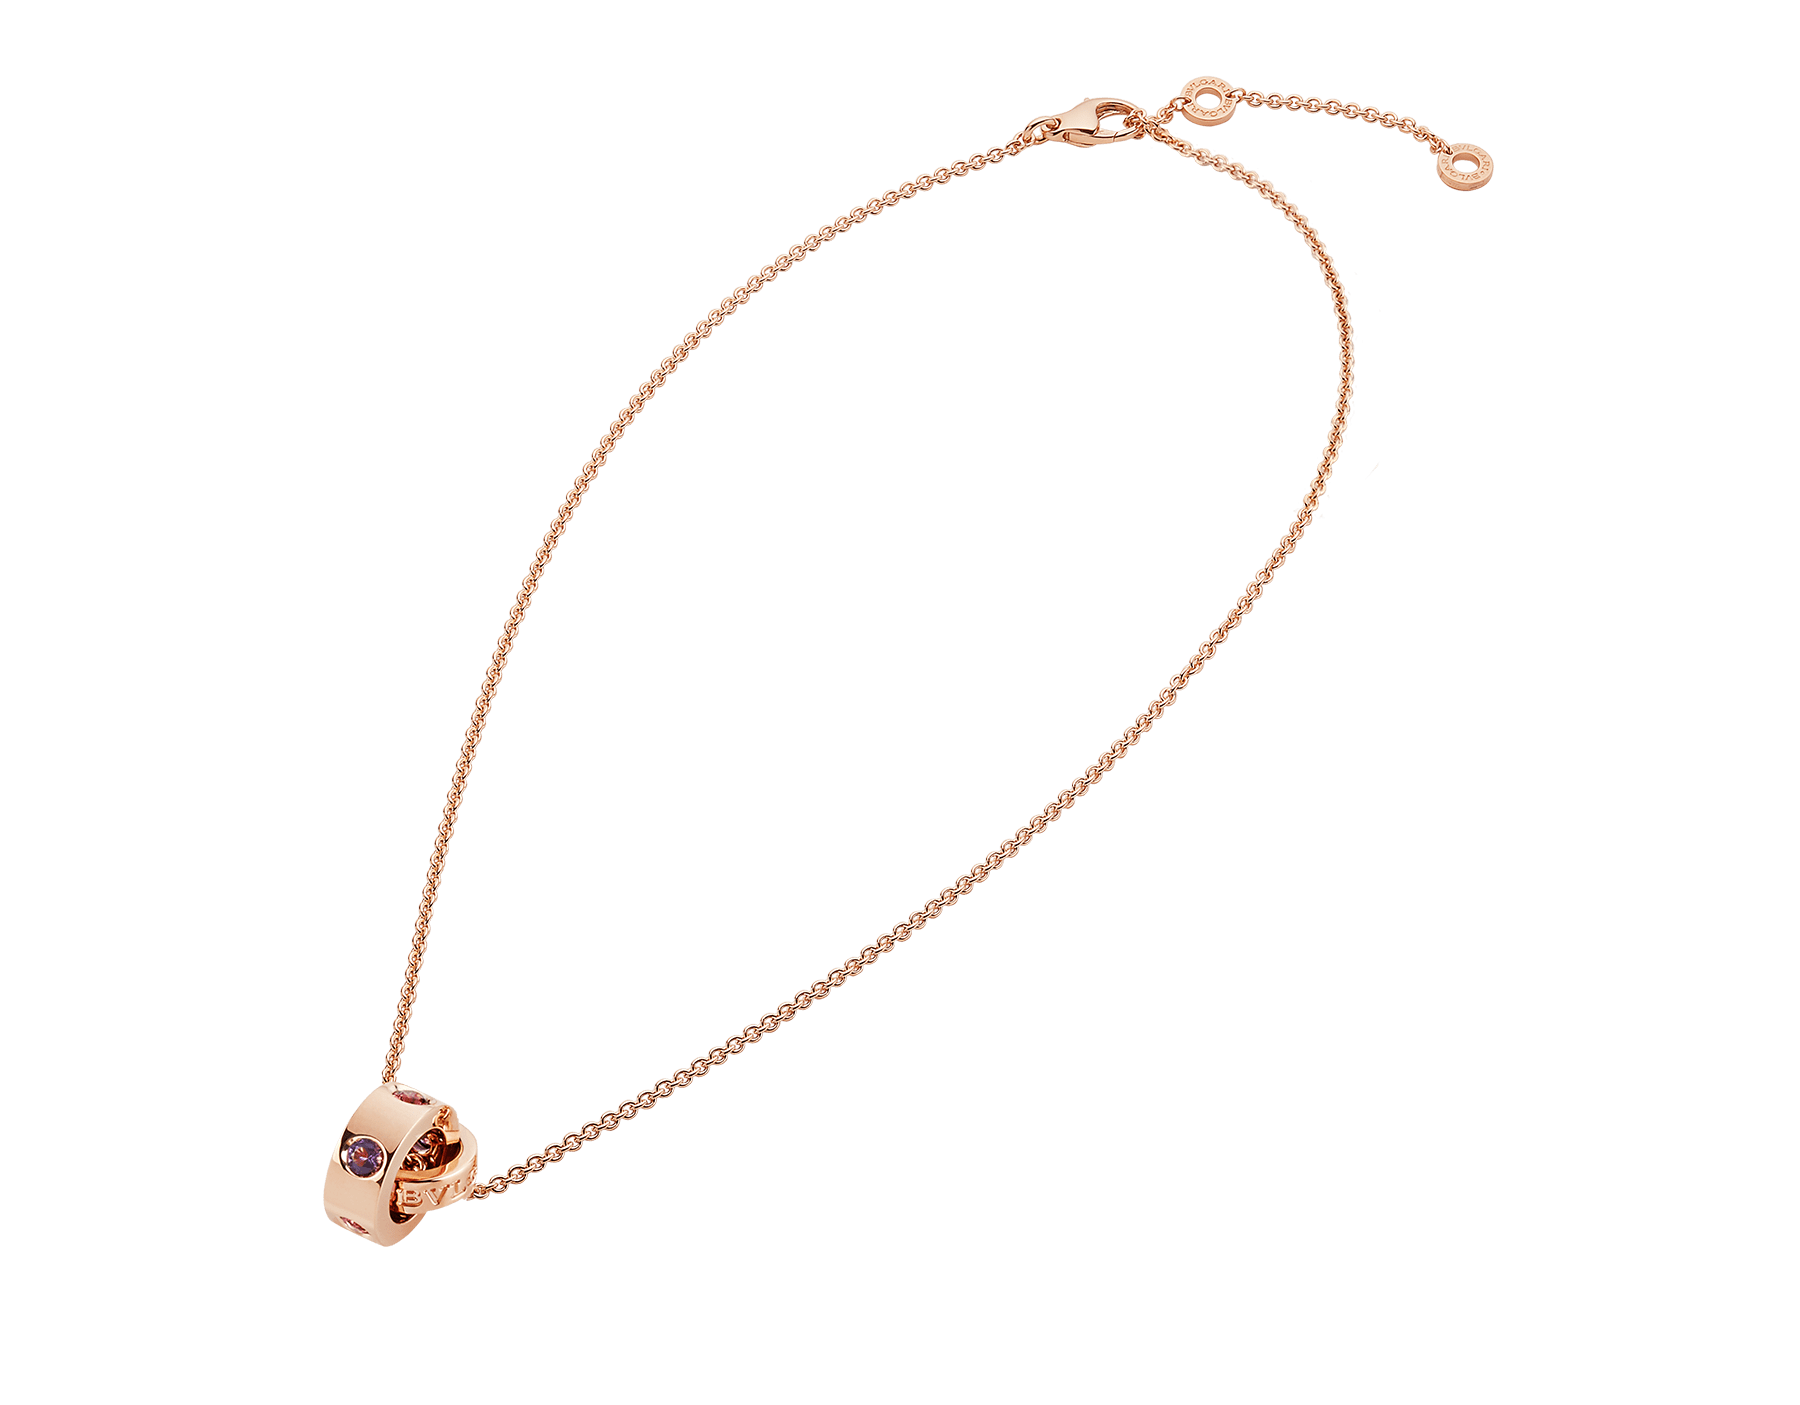 BVLGARI BVLGARI necklace with 18 kt rose gold chain and 18 kt rose gold pendant set with amethysts and pink tourmalines 352618 image 2